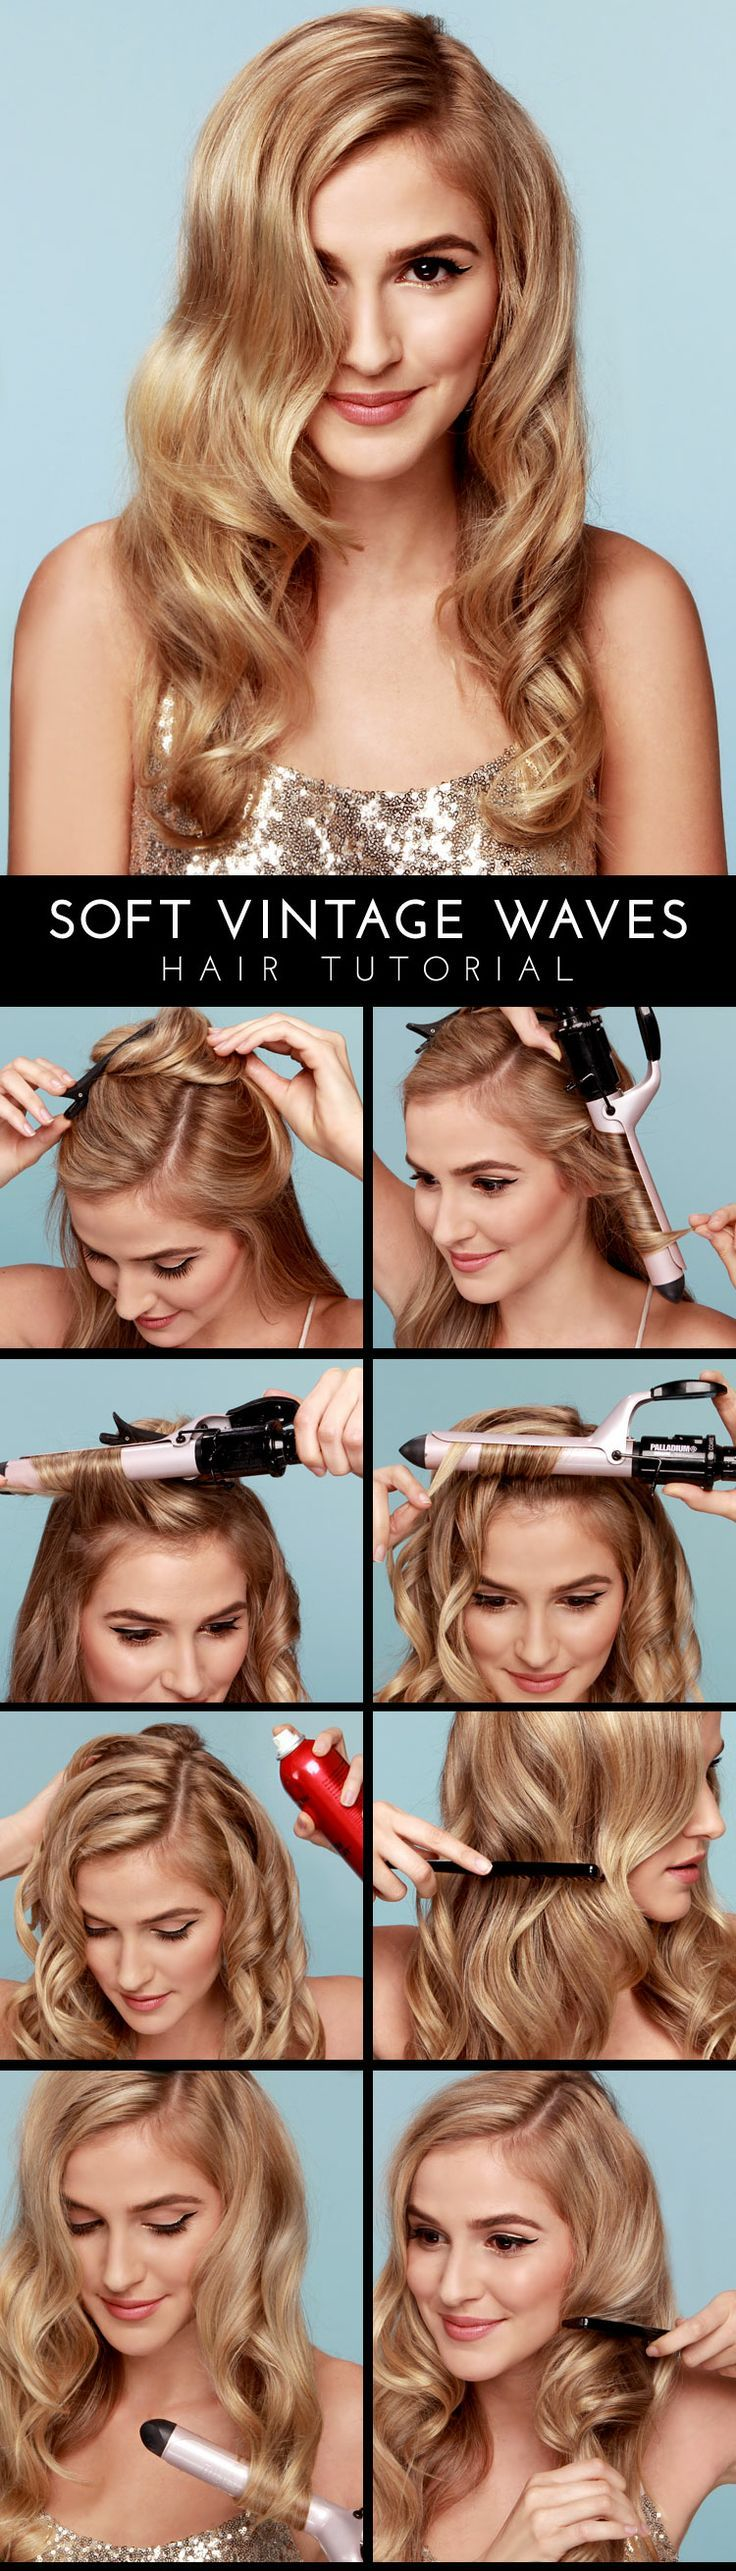 Soft vintage waves: A step-by-step run through! #hairstyle #vintage #beauty